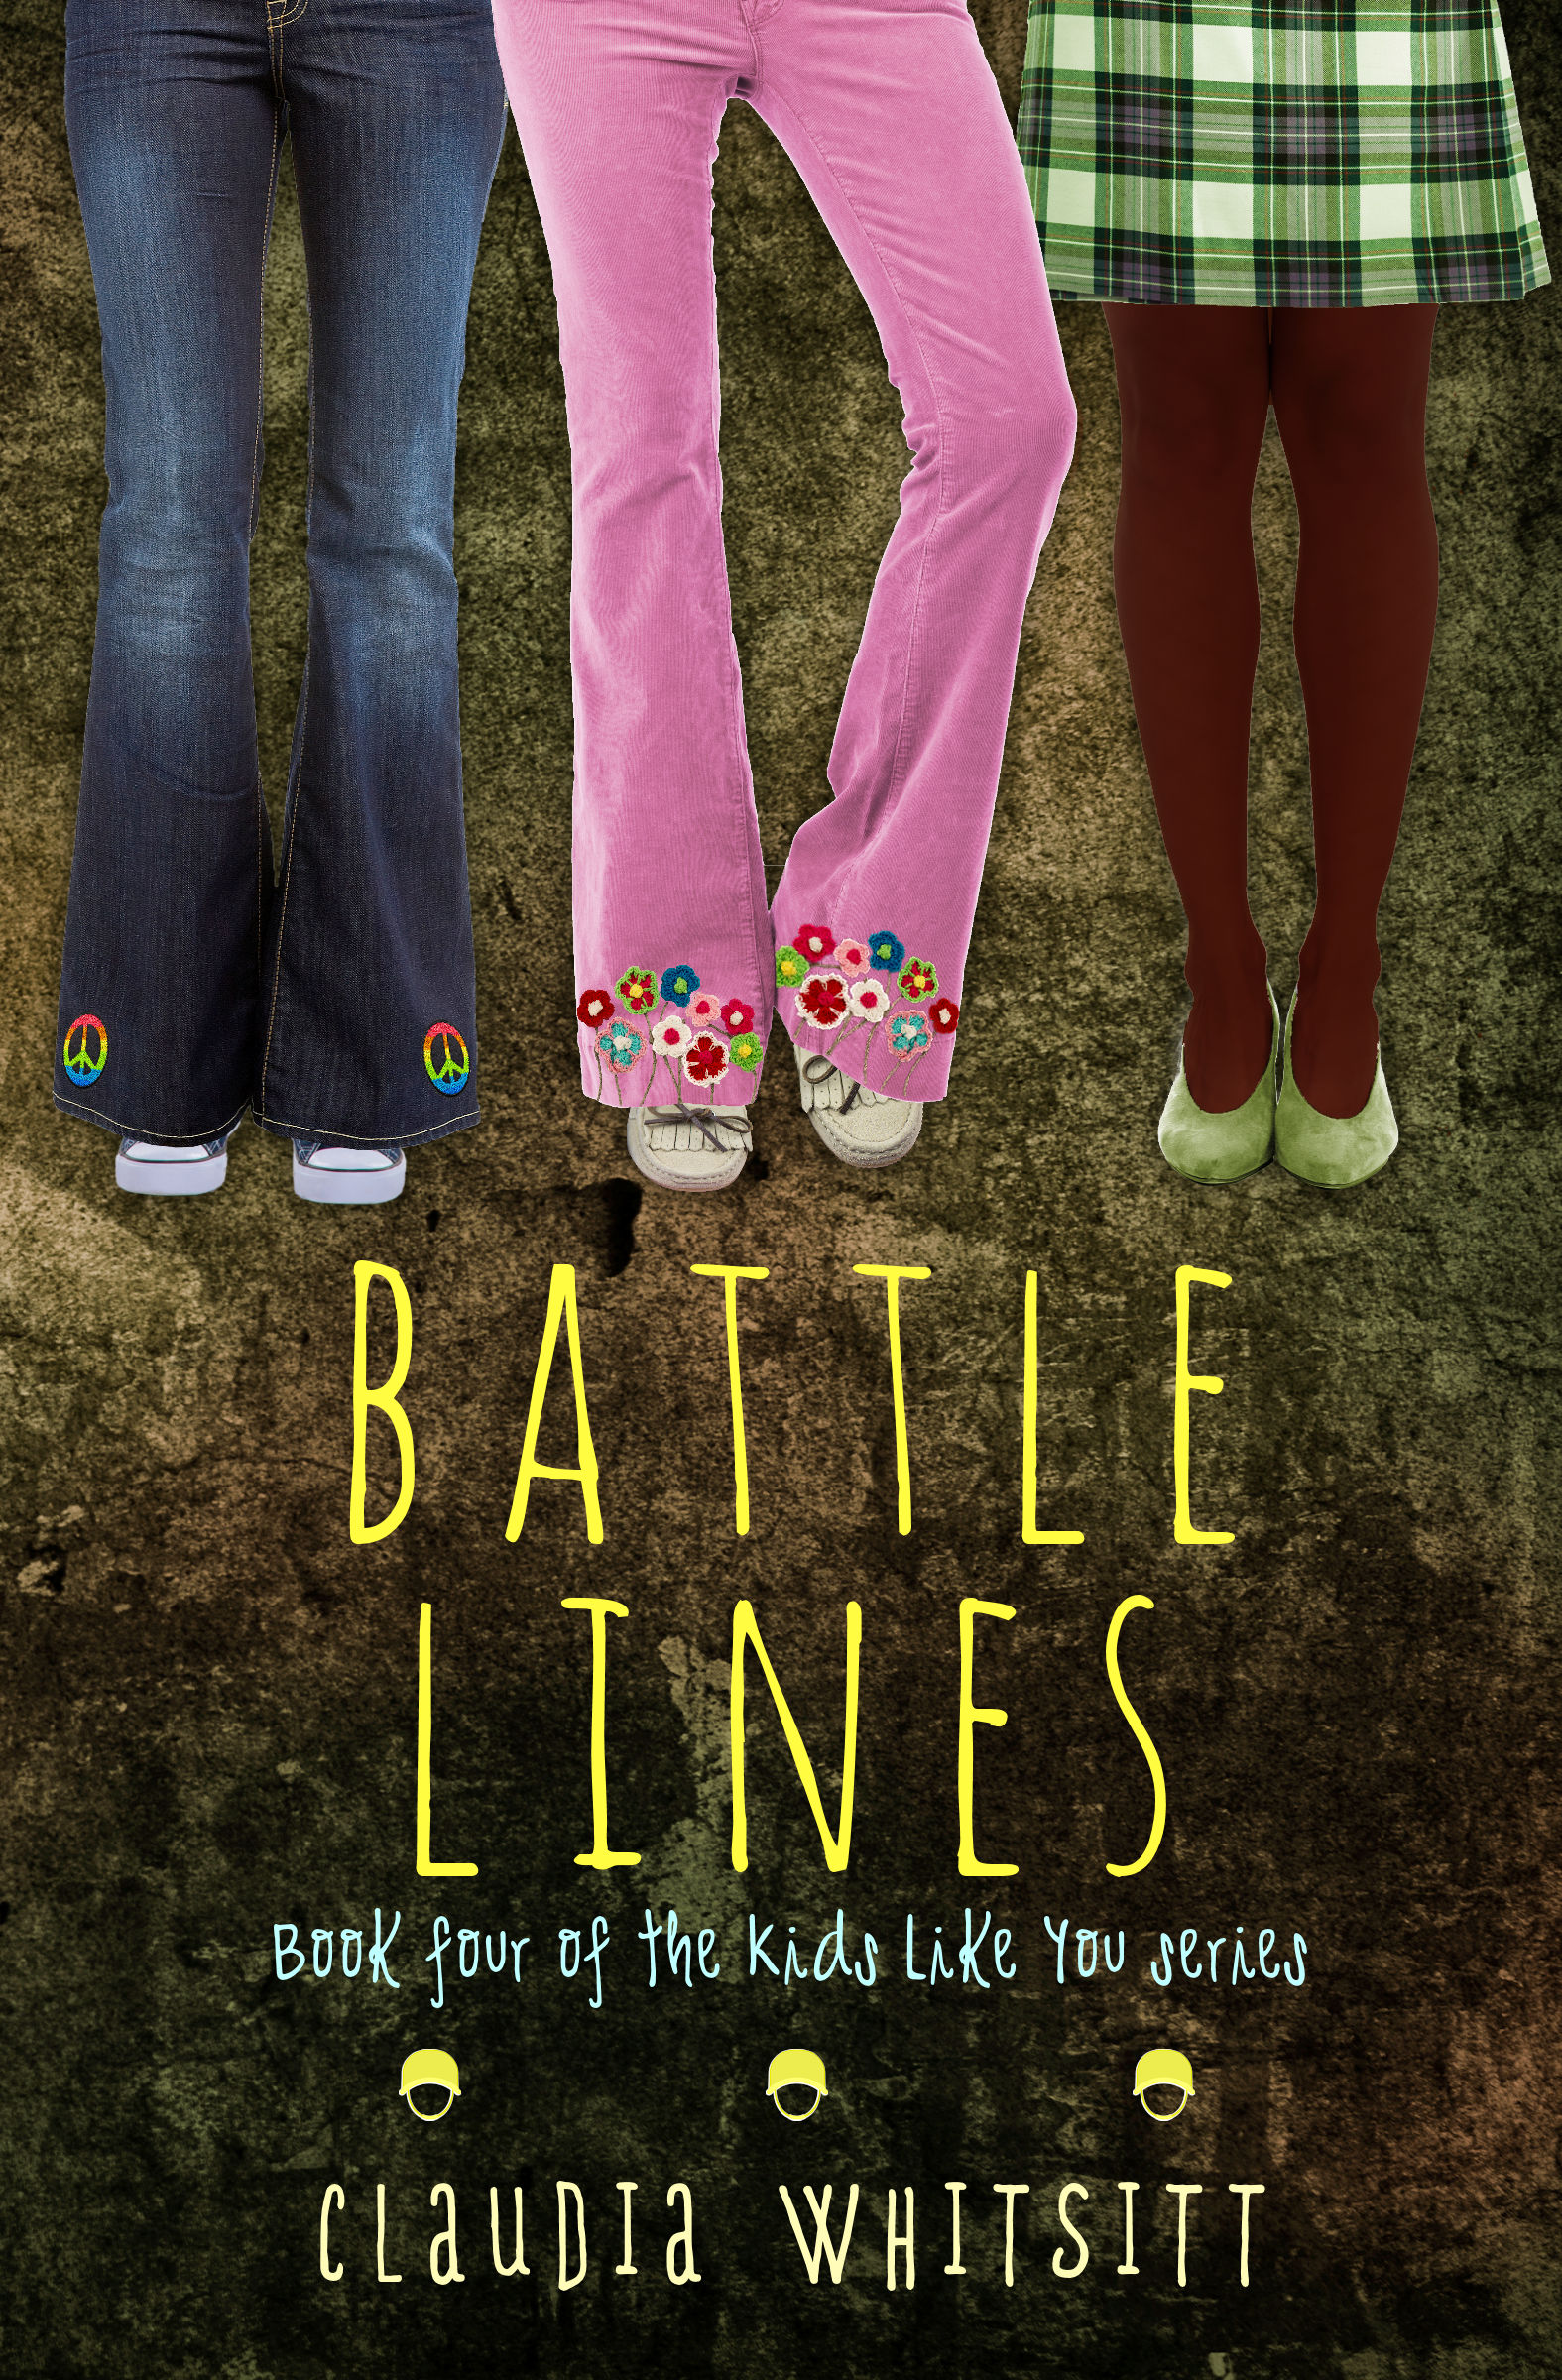 BRAND NEW! BOOK 4 IN THE KIDS LIKE YOU SERIES!